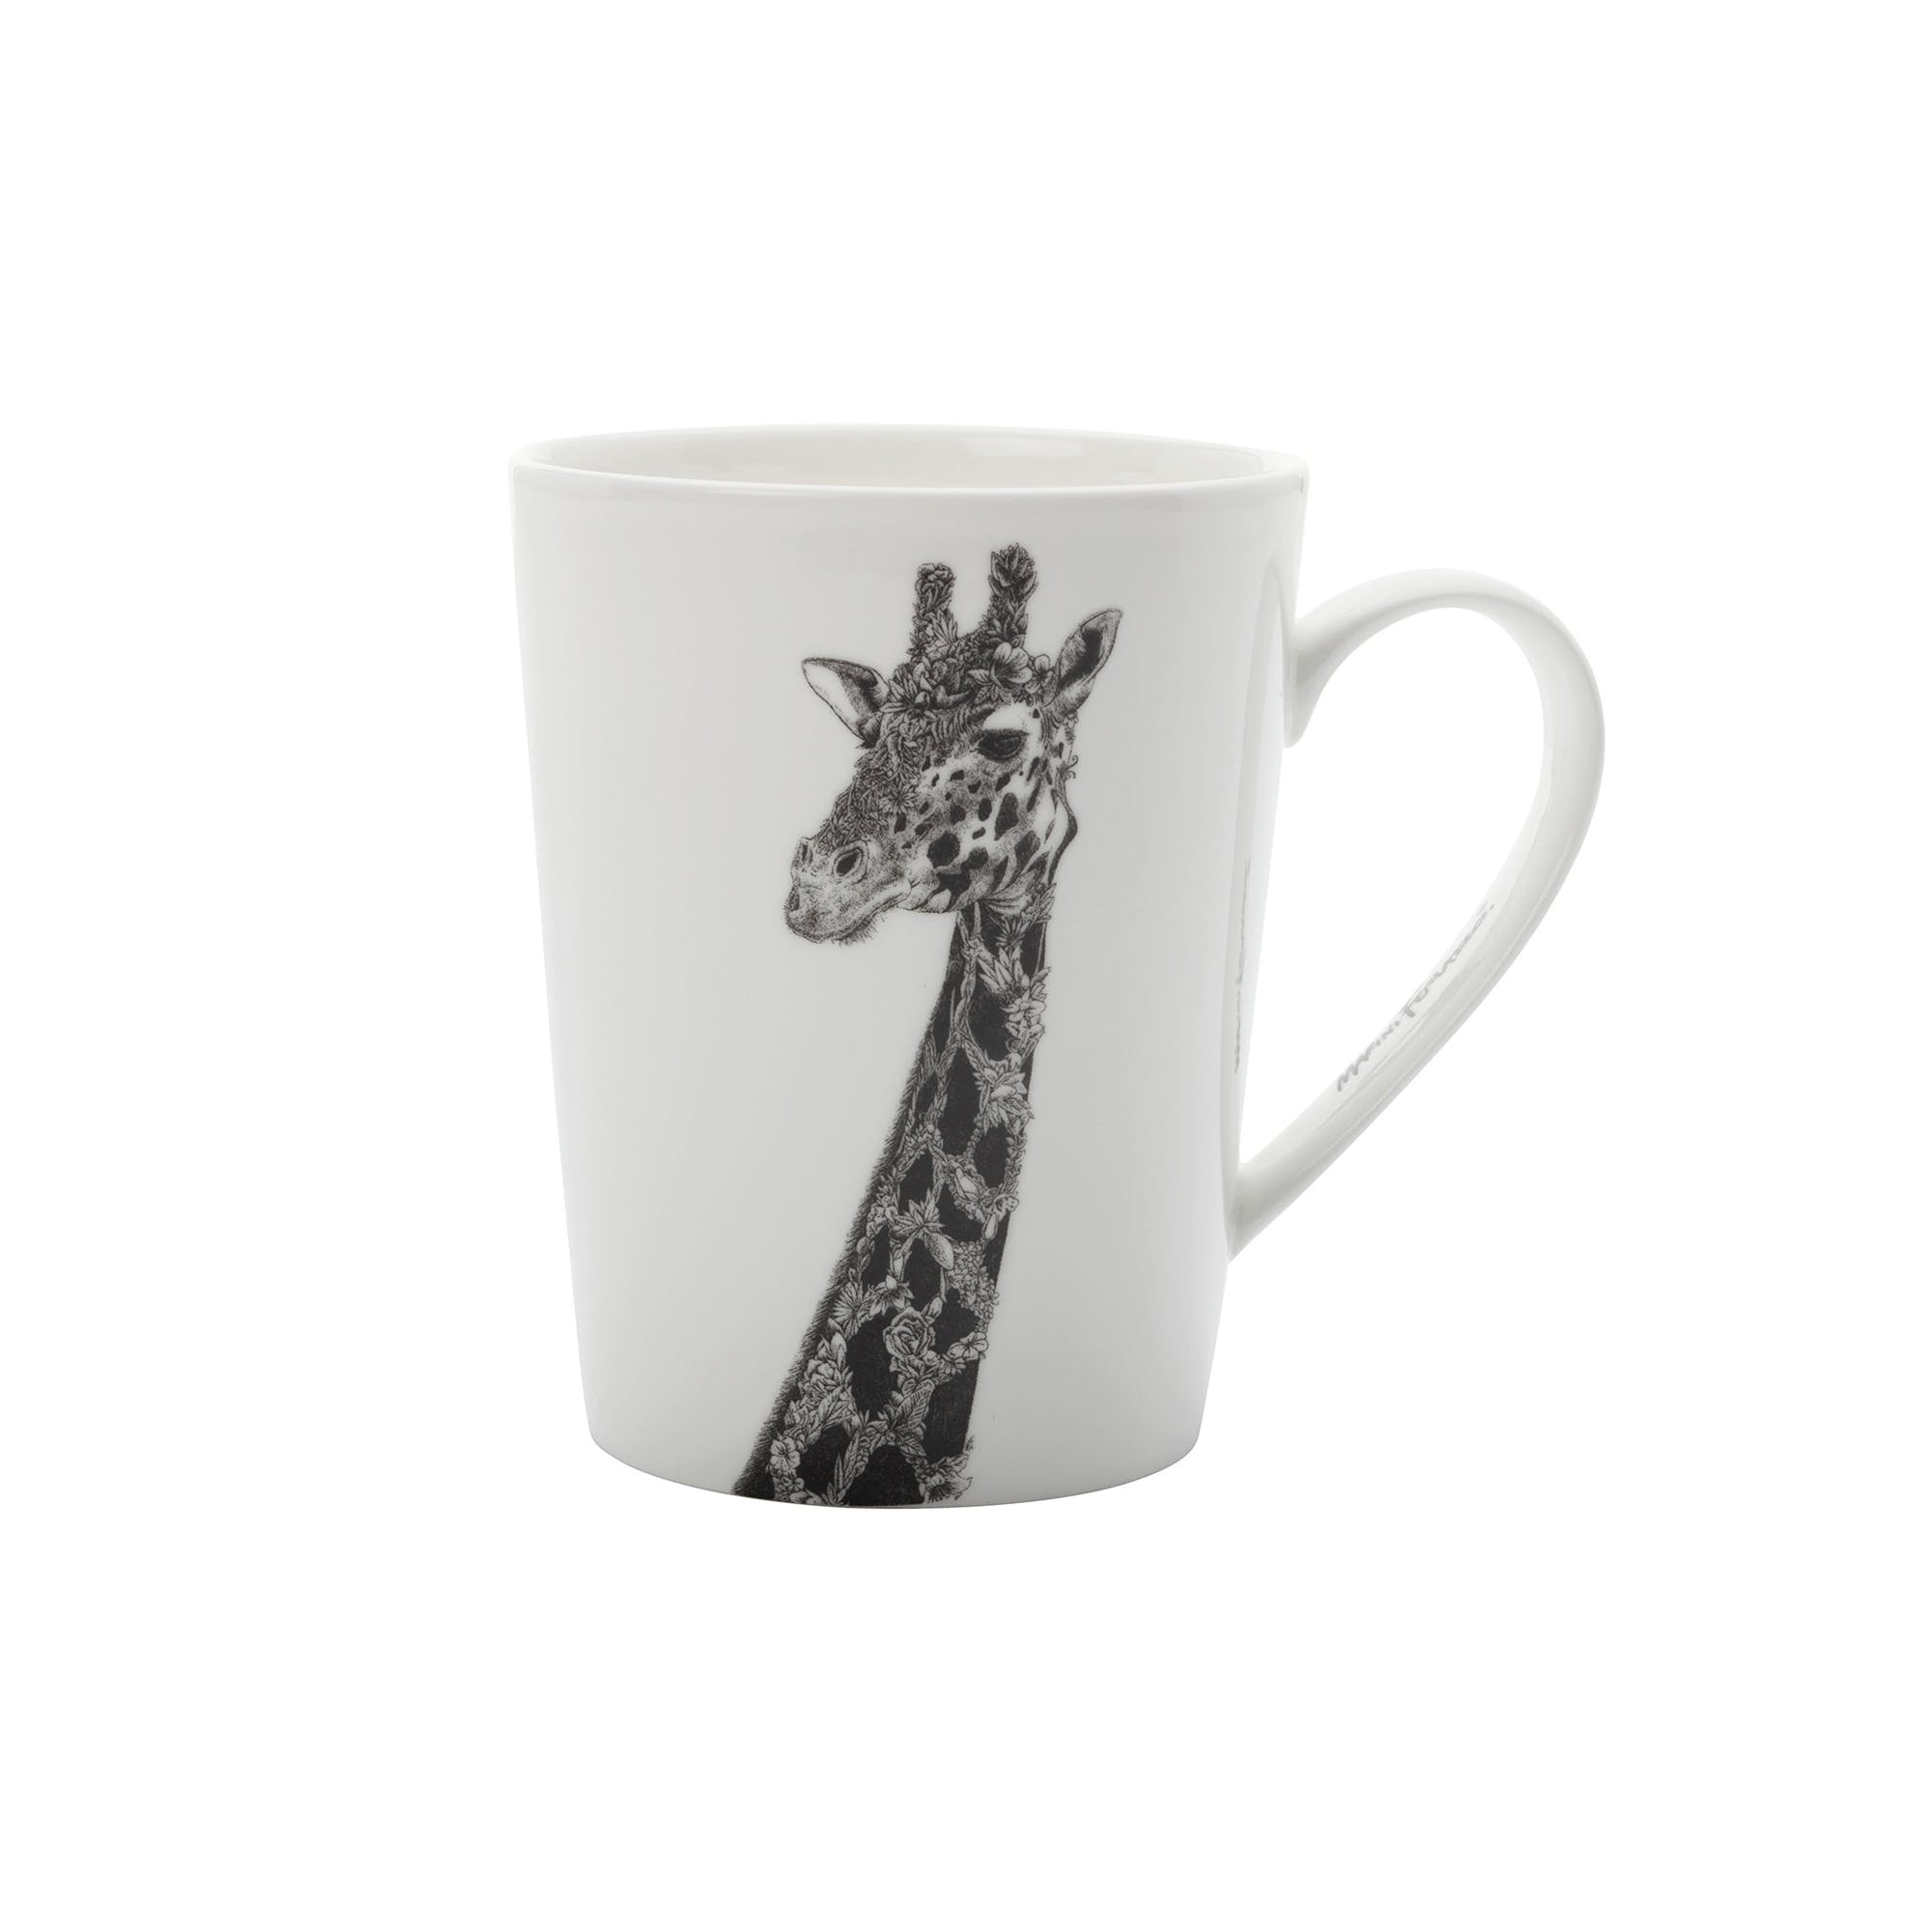 Giraffe Mug in Gift Box